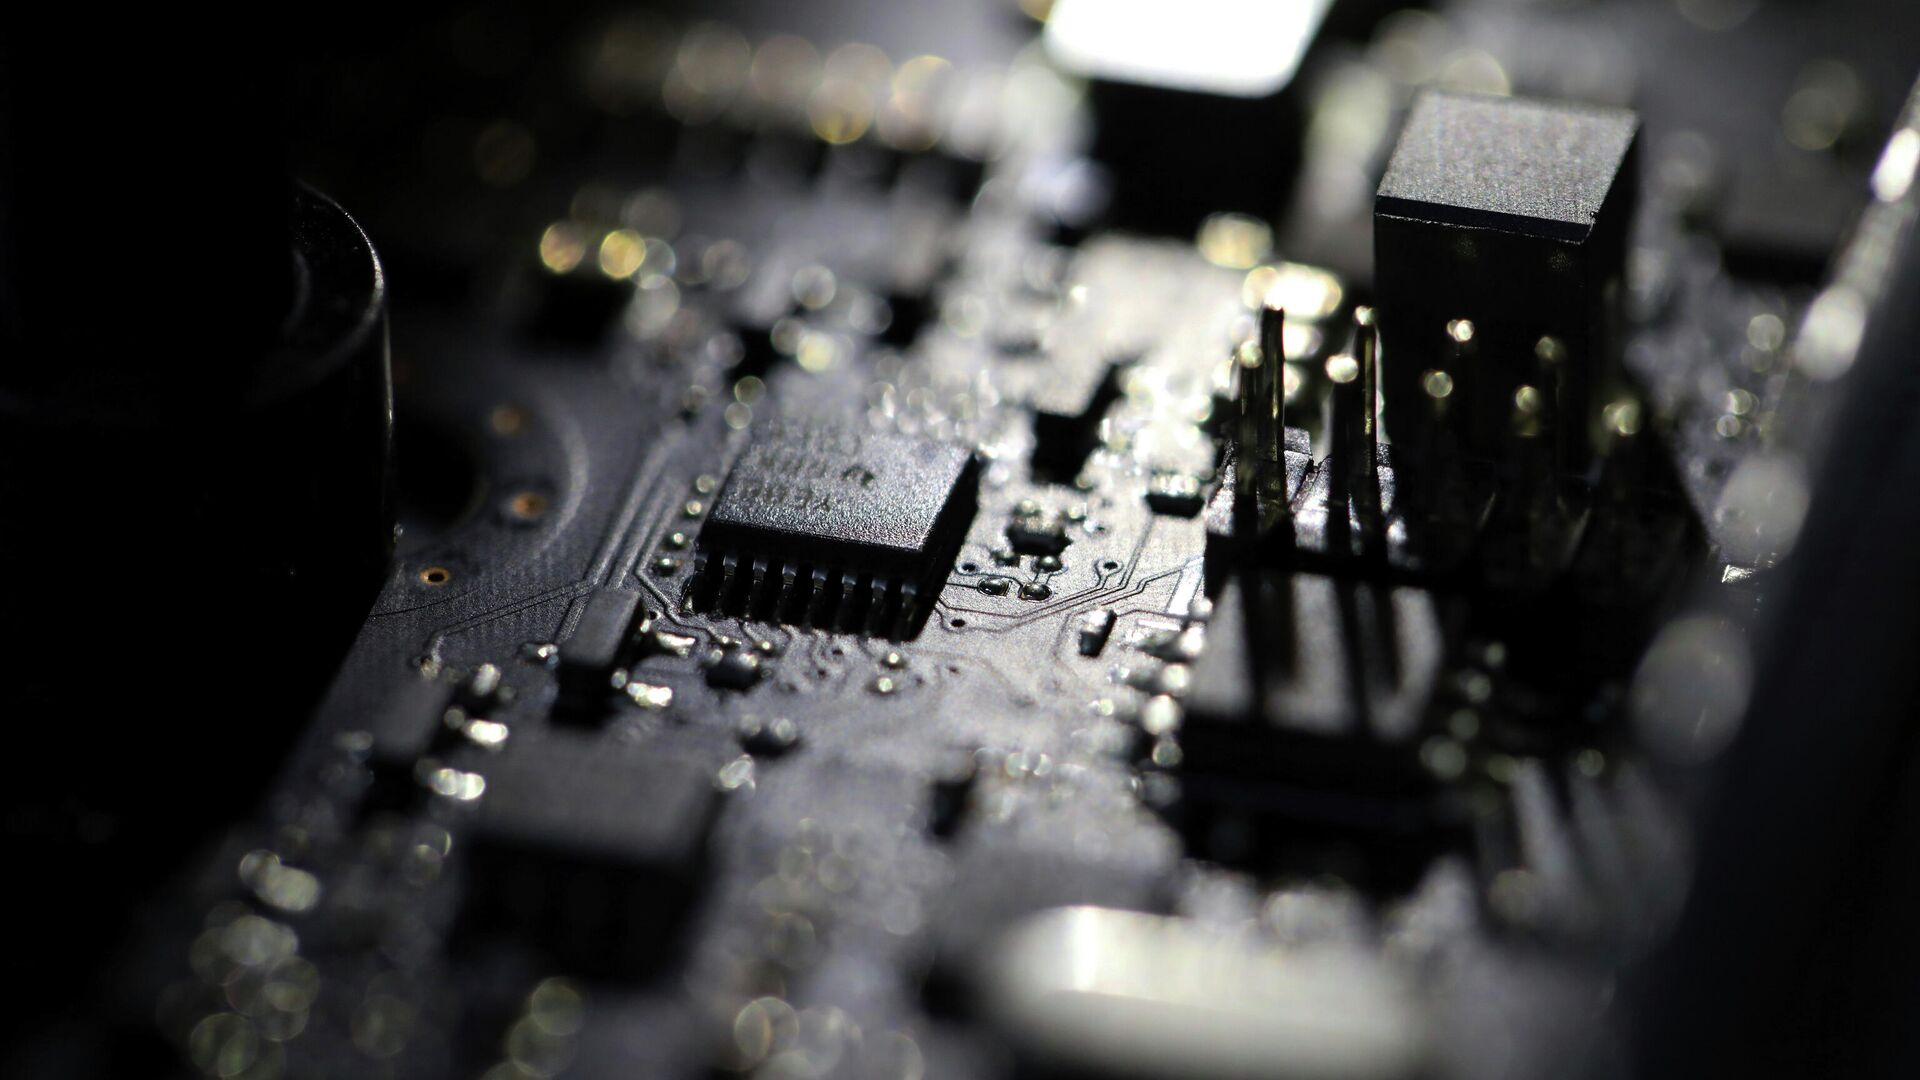 This Feb 23, 2019, file photo shows the inside of a computer. Three former U.S. intelligence and military operatives have agreed to pay nearly $1.7 million to resolve criminal charges that they provided sophisticated hacking technology to the United Arab Emirates. - Sputnik International, 1920, 12.10.2021